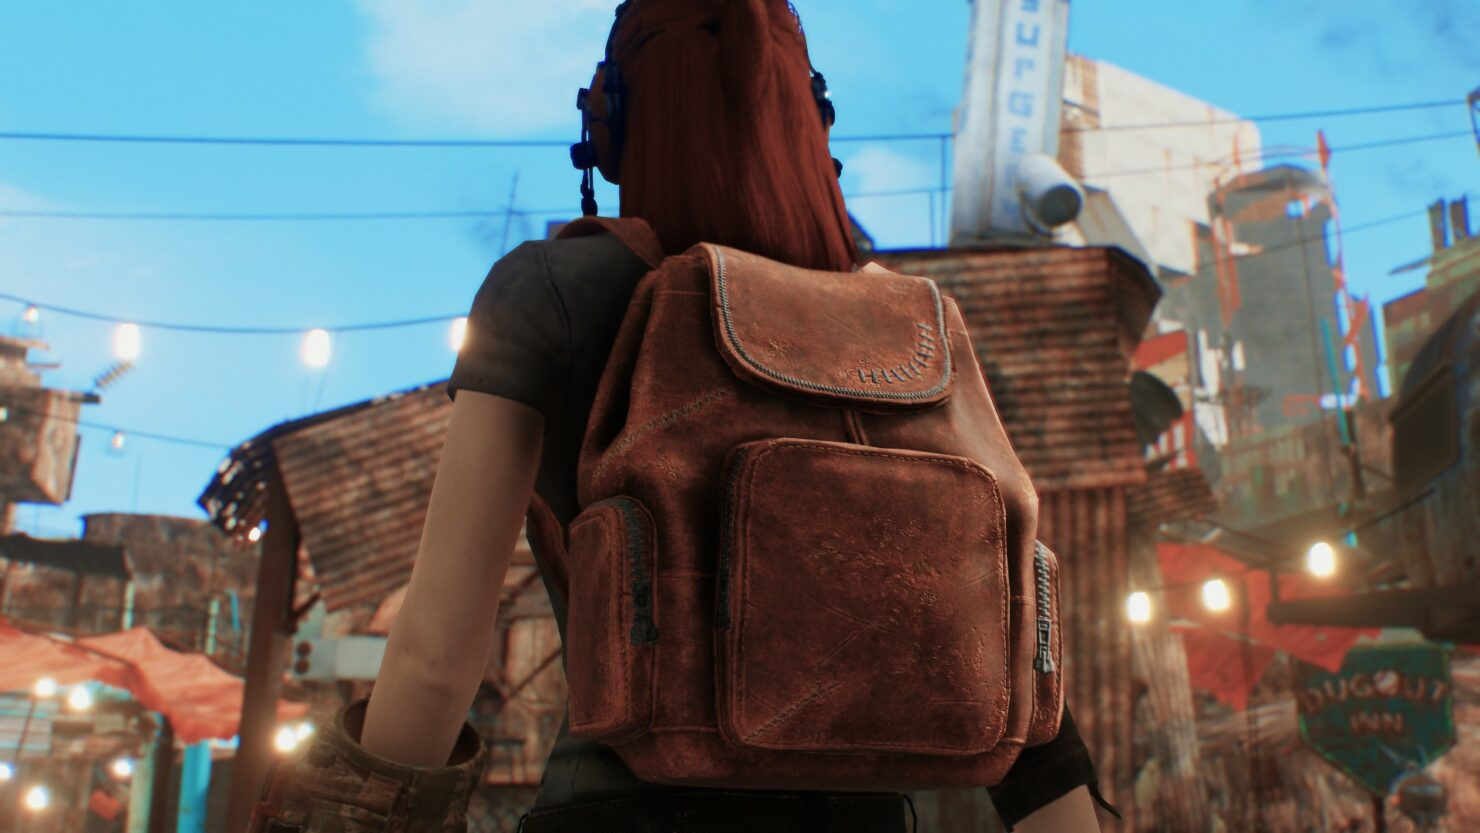 fallout 4 scavver backpack mod